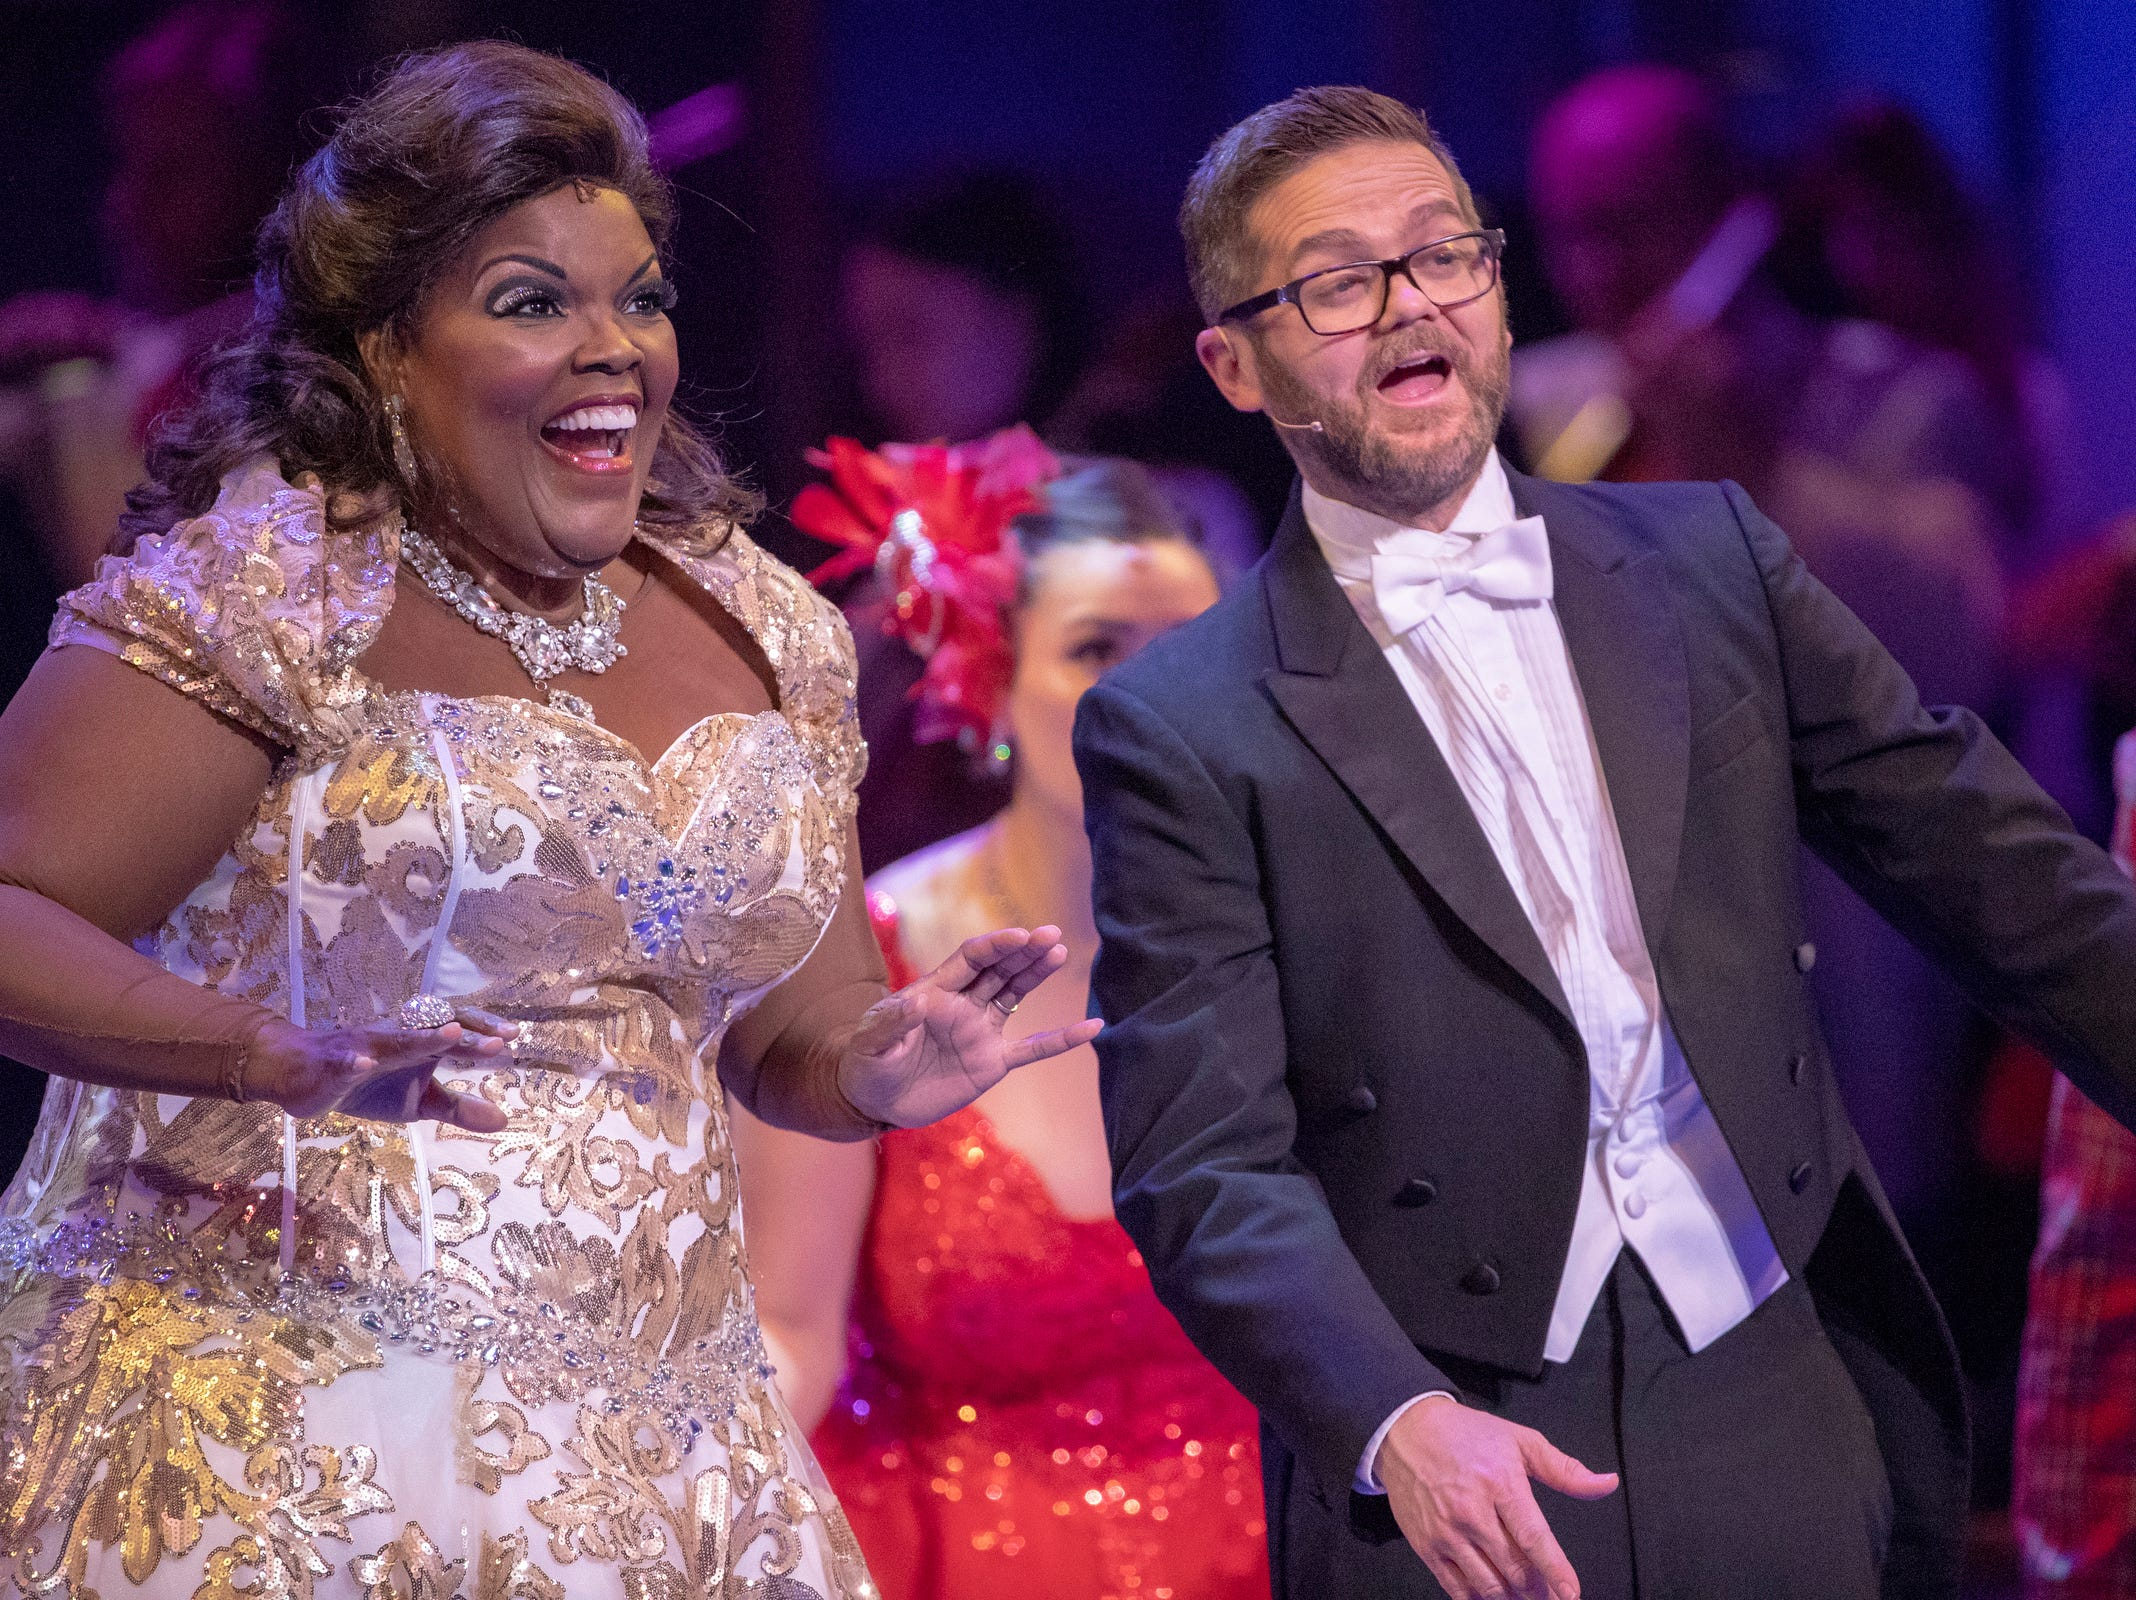 Angela Brown and Josh Kaufman sing at Yuletide Celebration, showcasing the Indianapolis Symphony Orchestra, at Hilbert Circle Theater, Indianapolis, Sunday. Dec. 23, 2018. The extravaganza features dancing, holiday songs, and skits.